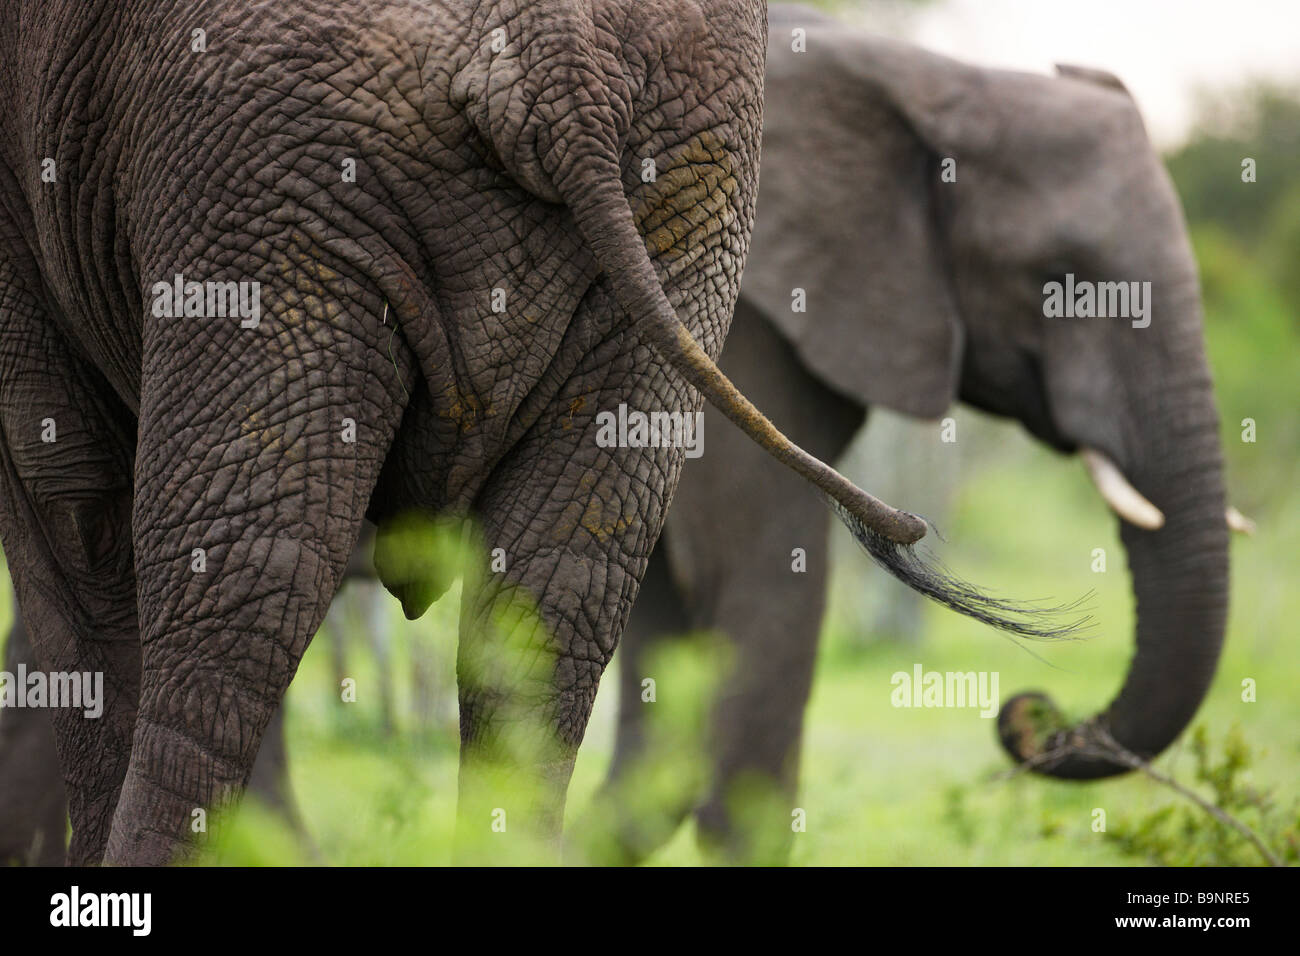 frontal and rear aspect of two African elephants in the bush, Kruger National Park, South Africa - Stock Image